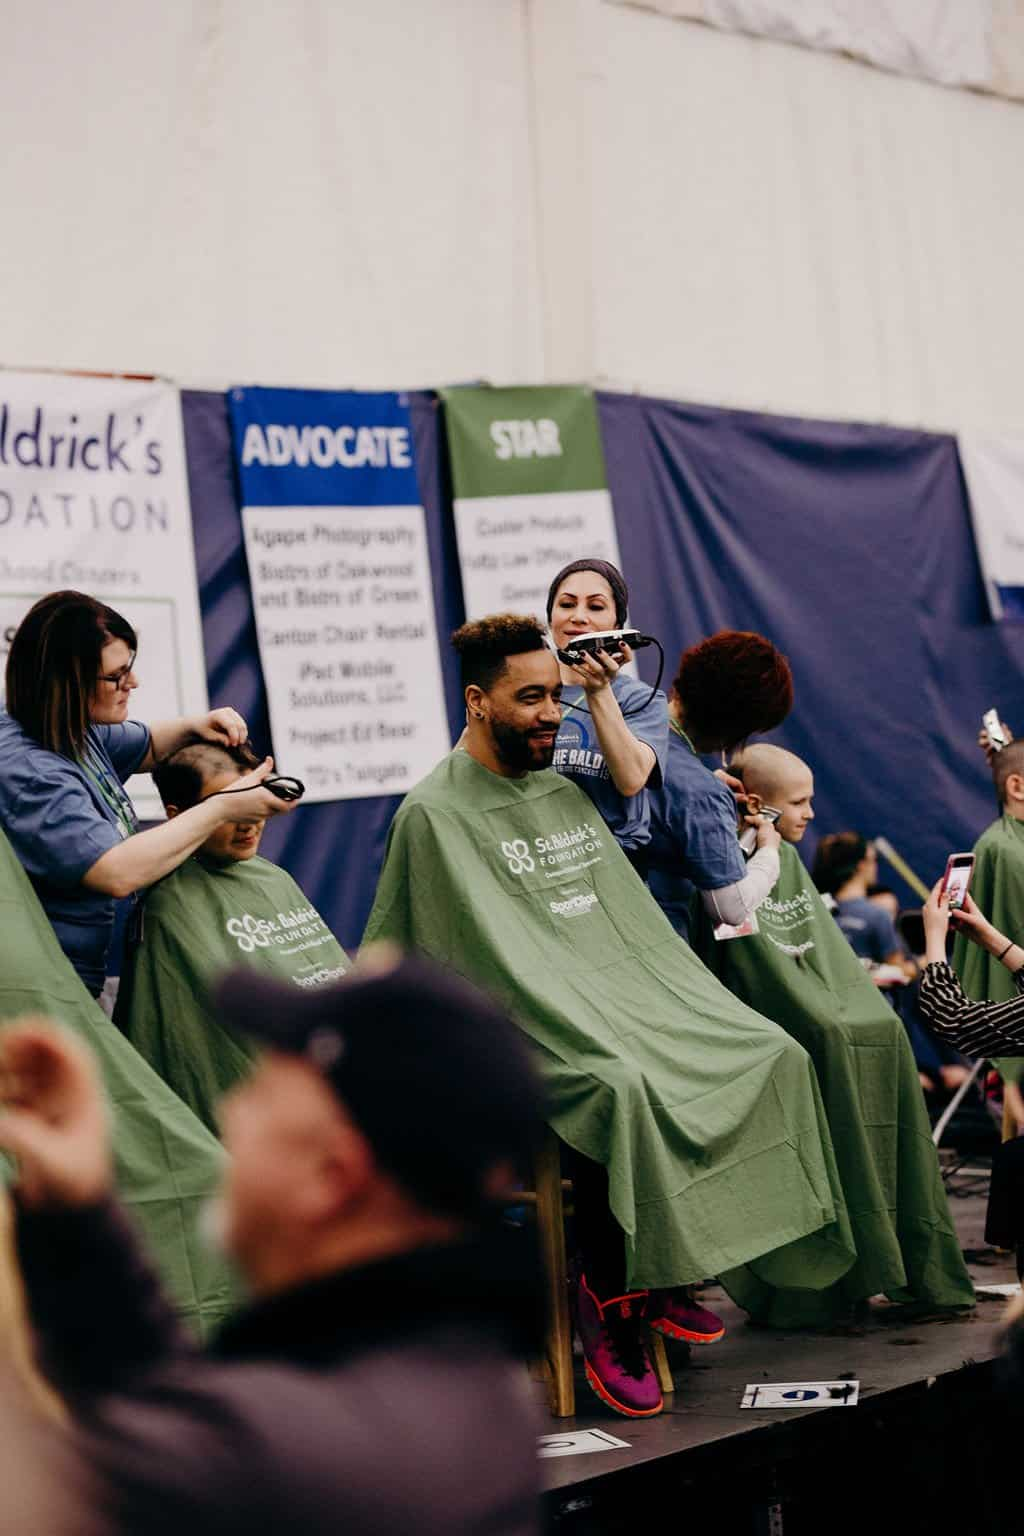 St. Baldricks | I bet you wouldn't shave your head 239